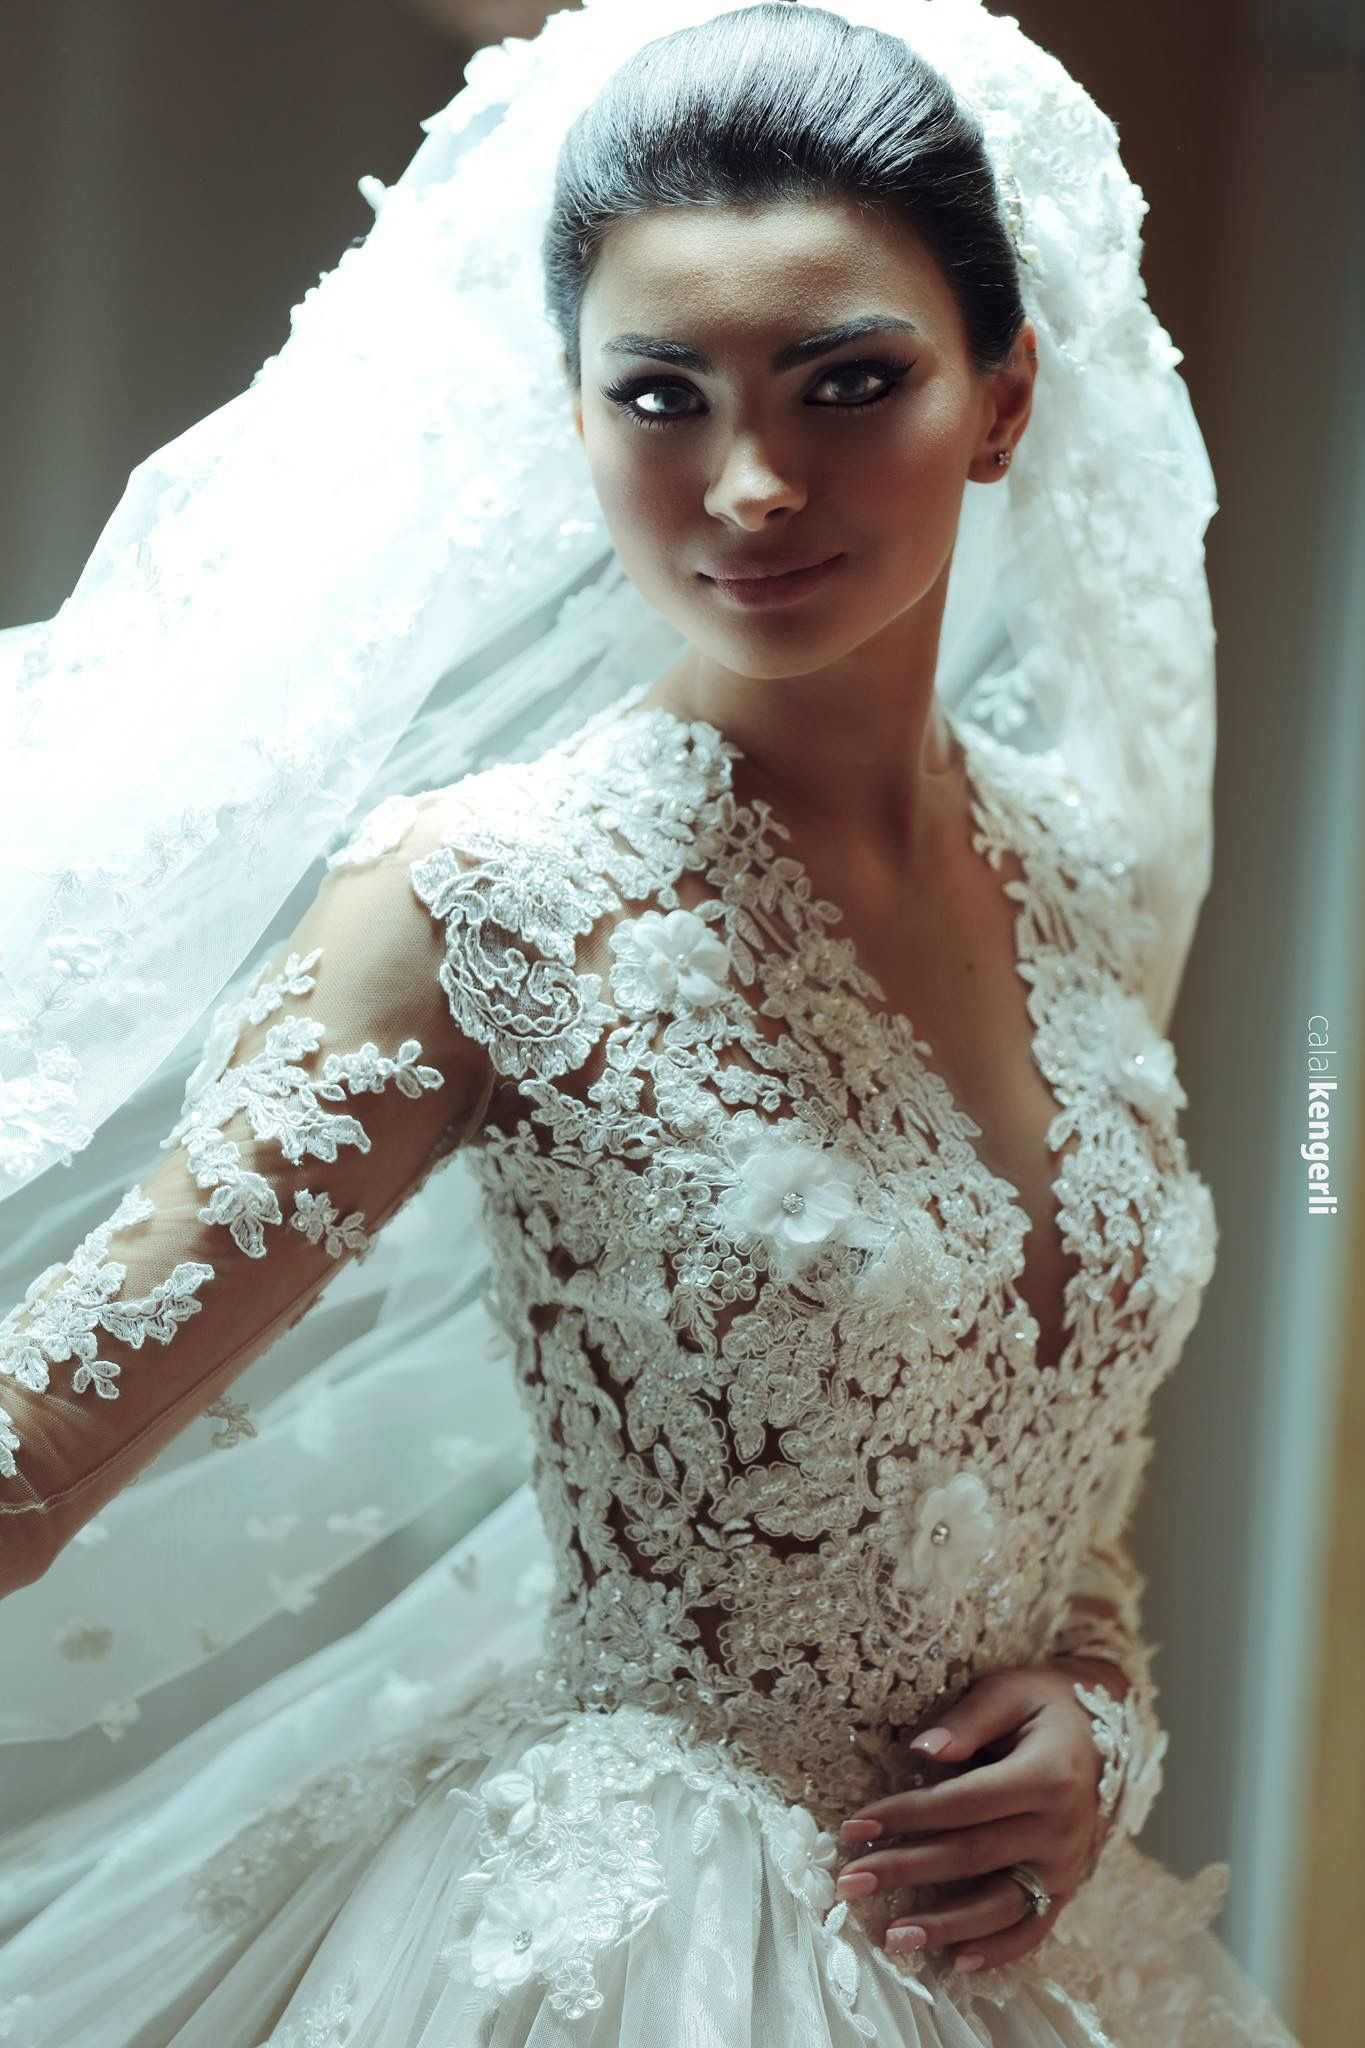 Pin by Diane * on Exquisite wedding gowns | Pinterest | Wedding ...